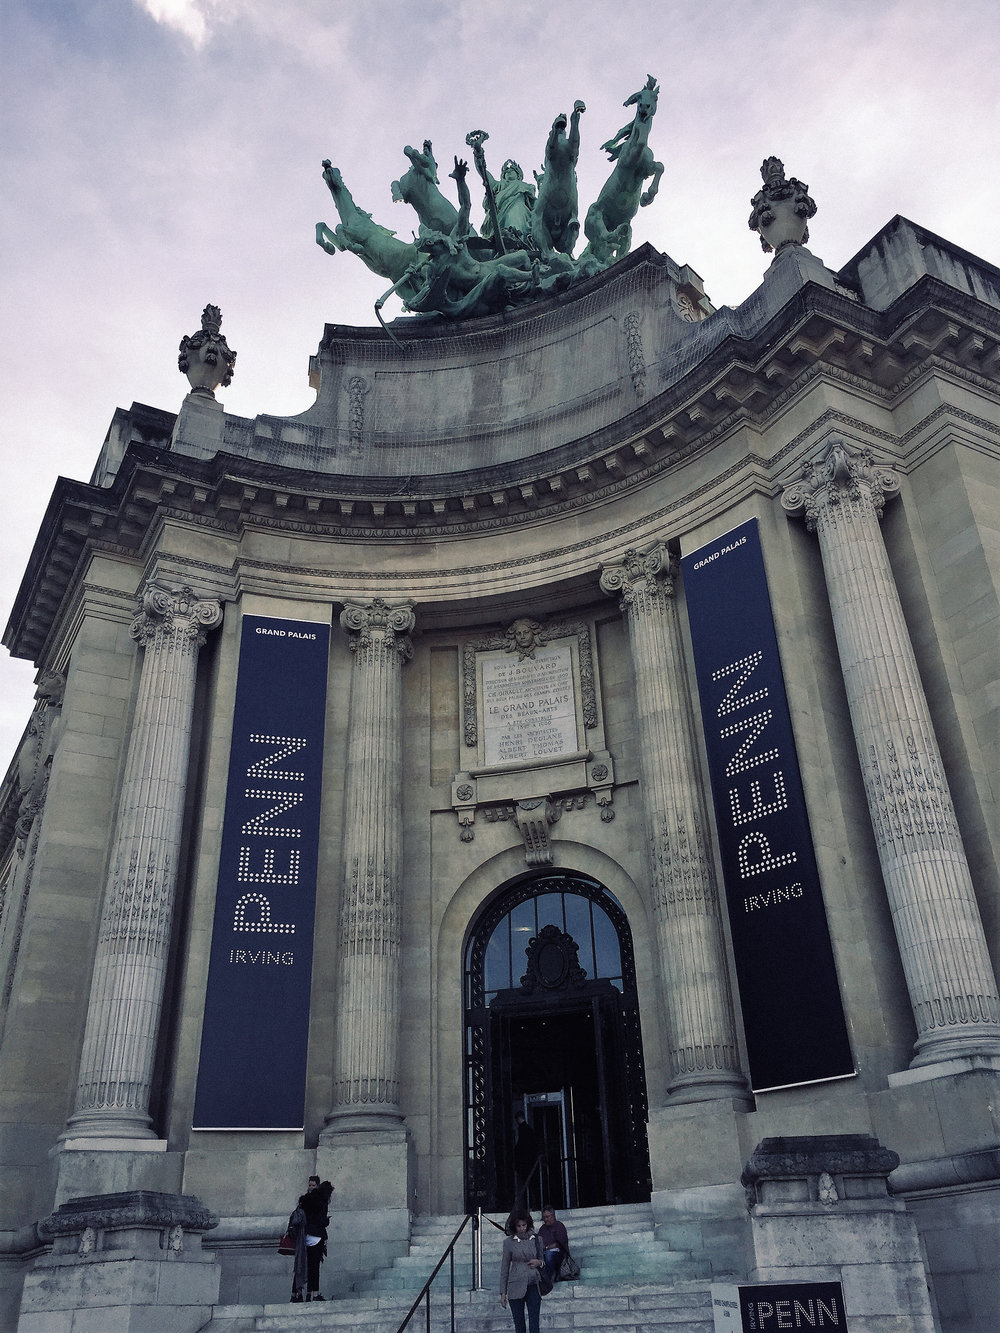 Centenary Exhibition - Grand Palais Paris - September 21. 2017 - January 29. 2018